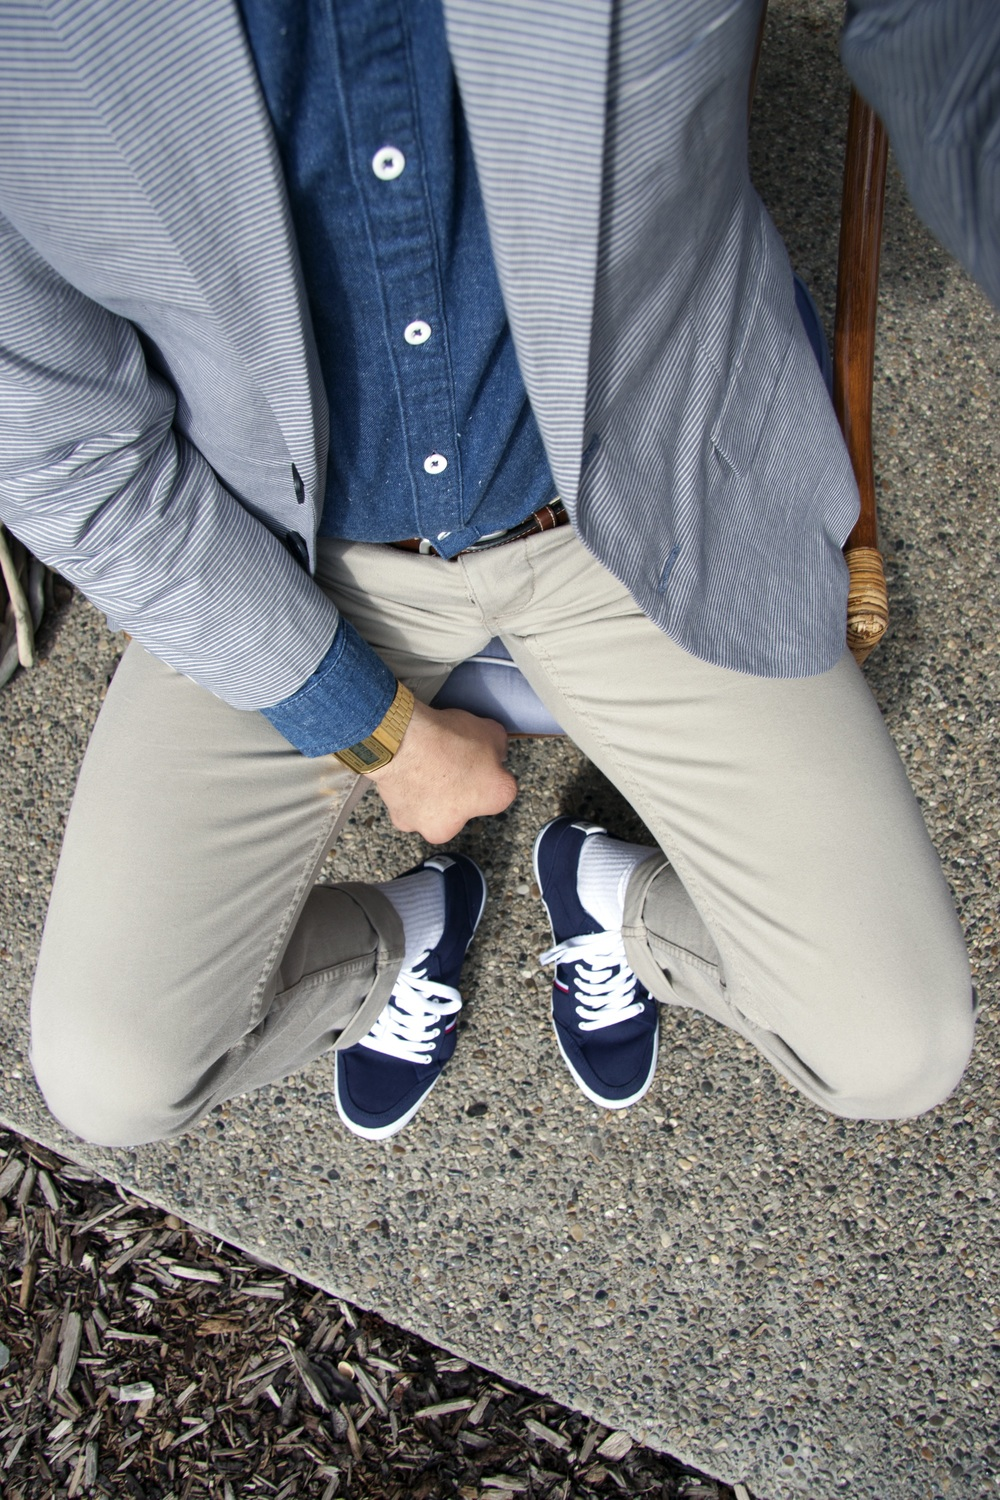 Jacket and pants by Banana Republic.  Shirt by Topman. Watch by Casio. Shoes by Tommy Hilfiger